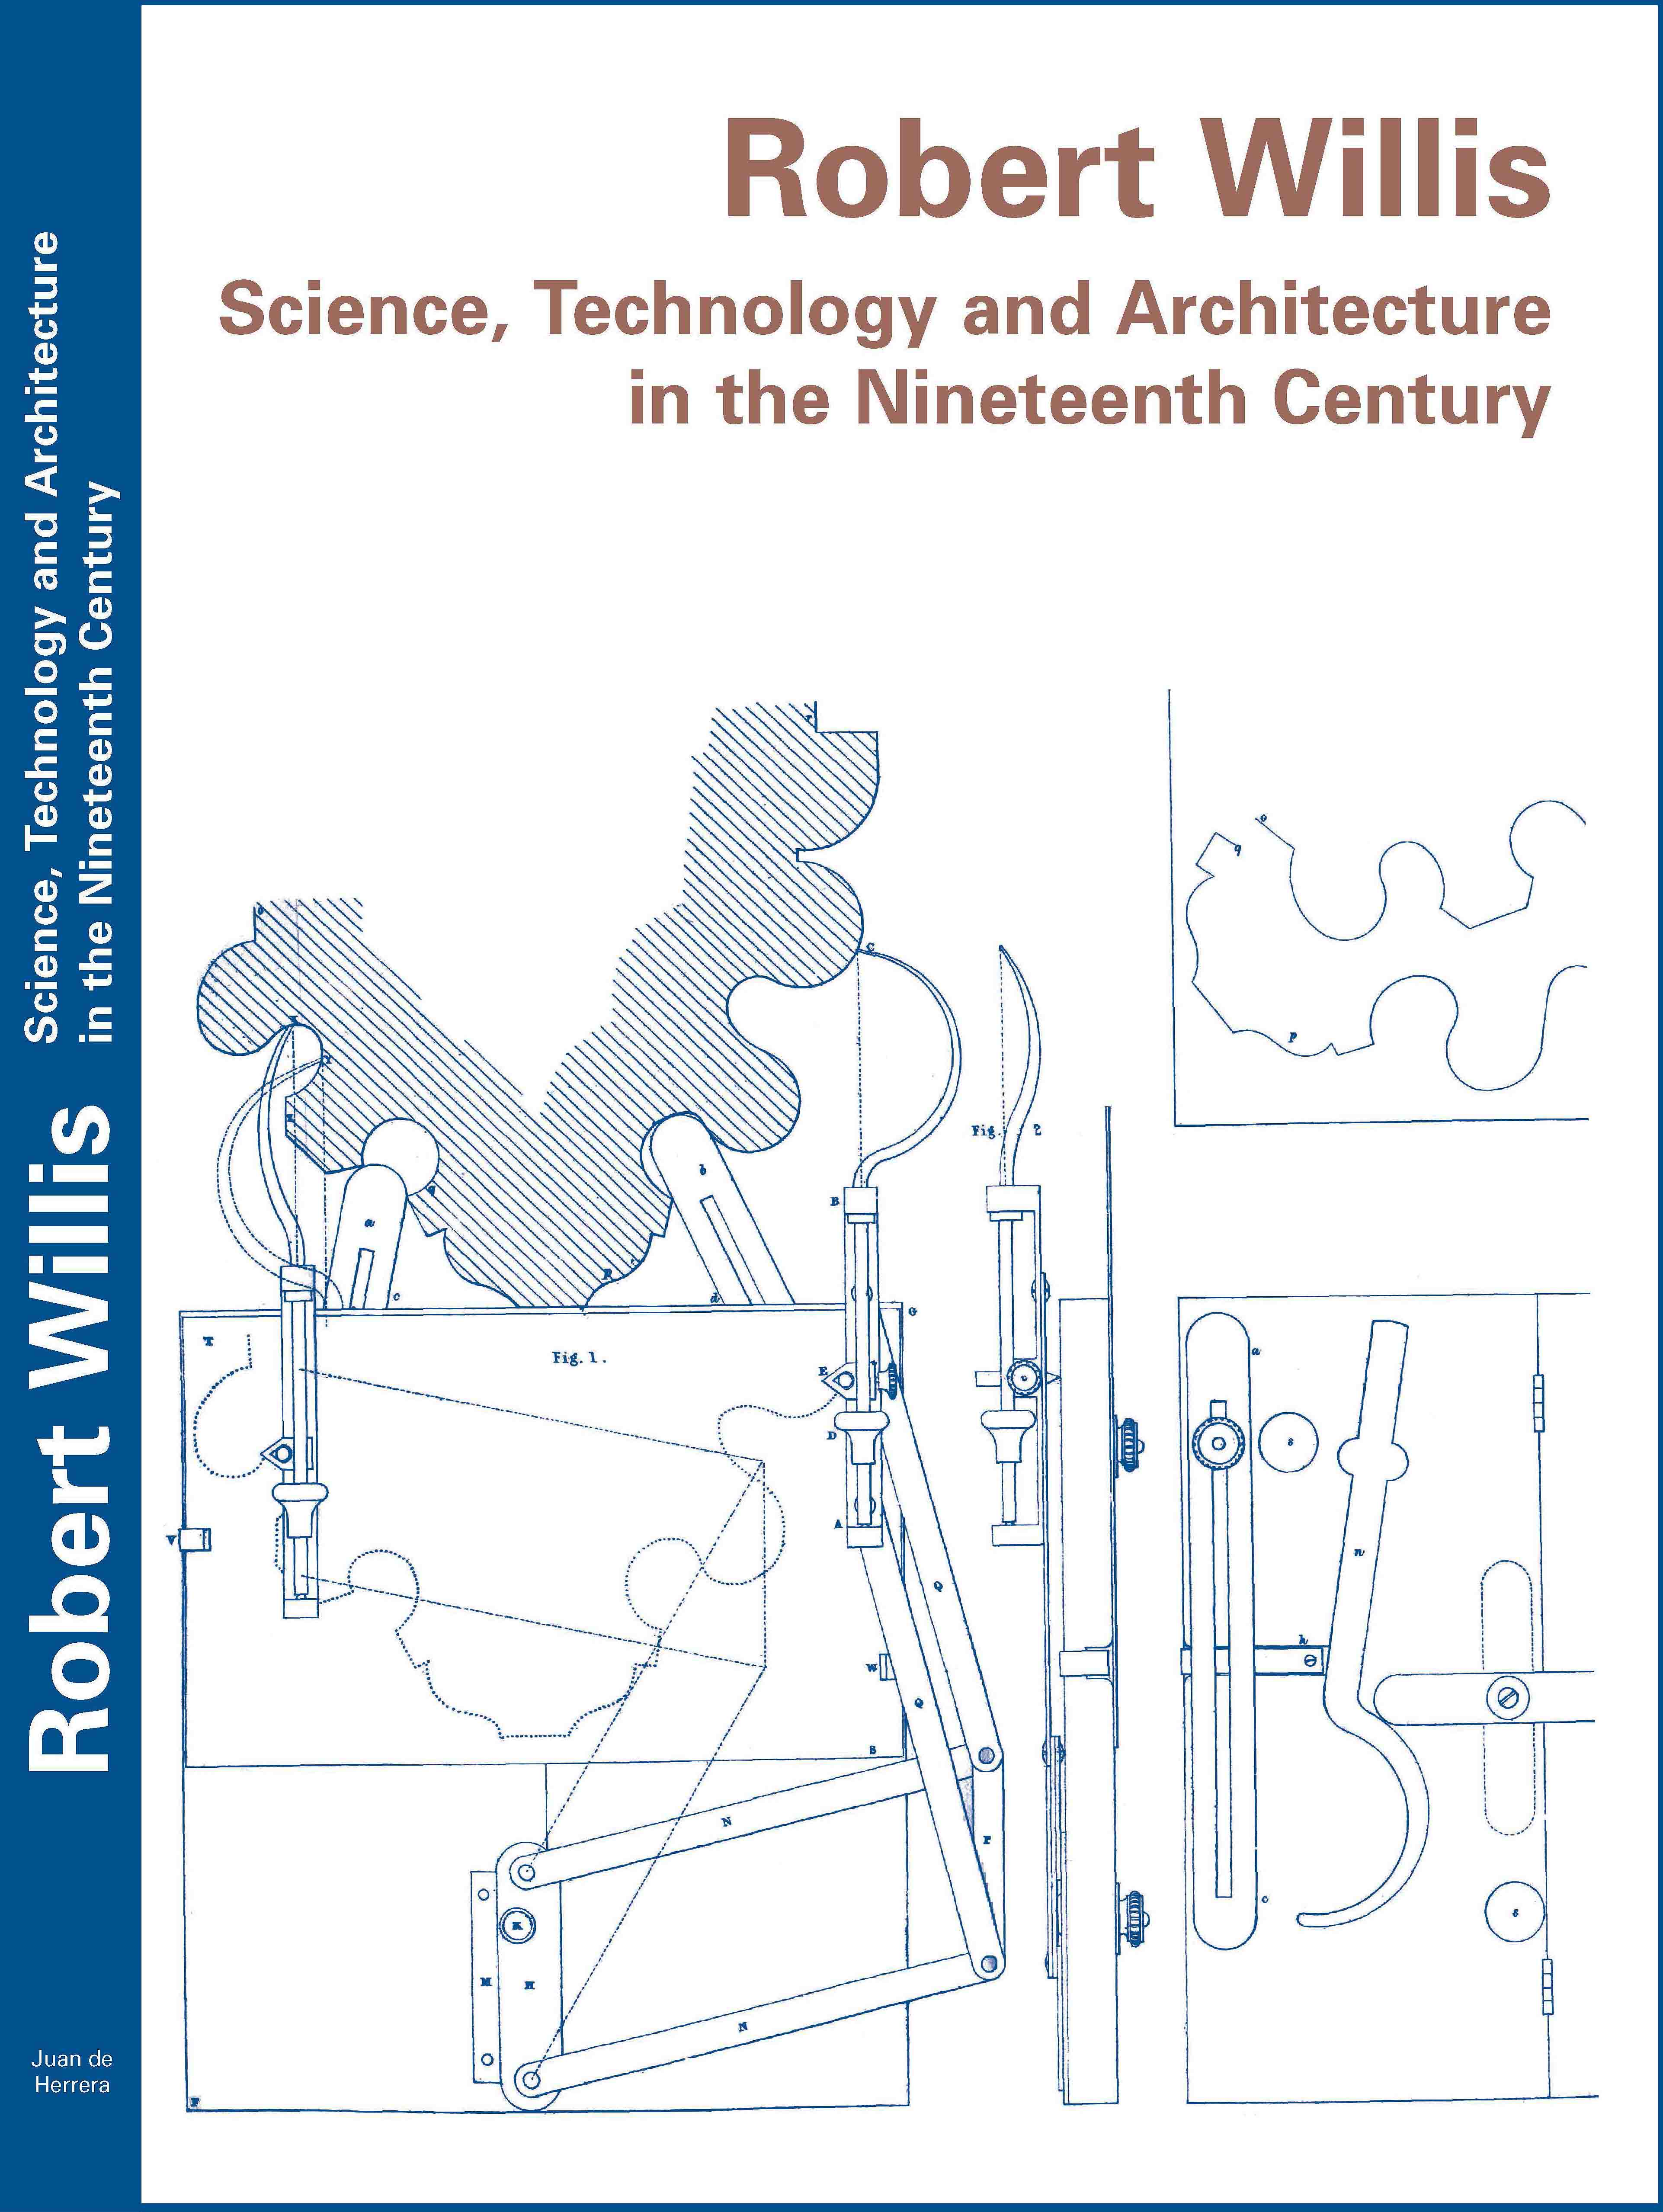 New book: Robert Willis, Science, Technology and Architecture in the Nineteenth Century